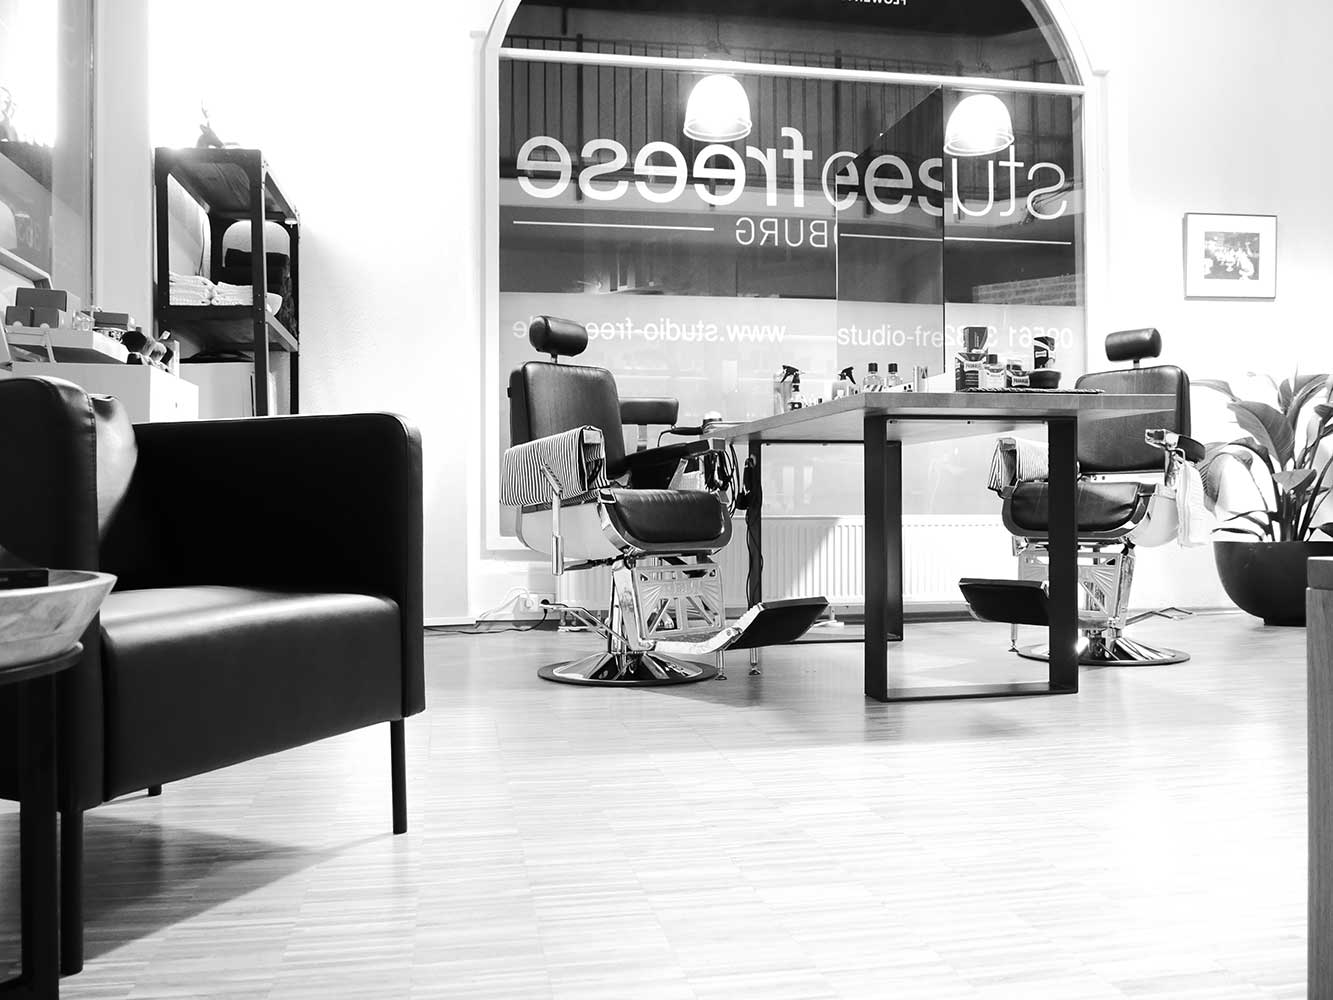 Barbershop Coburg bei Studio Freese